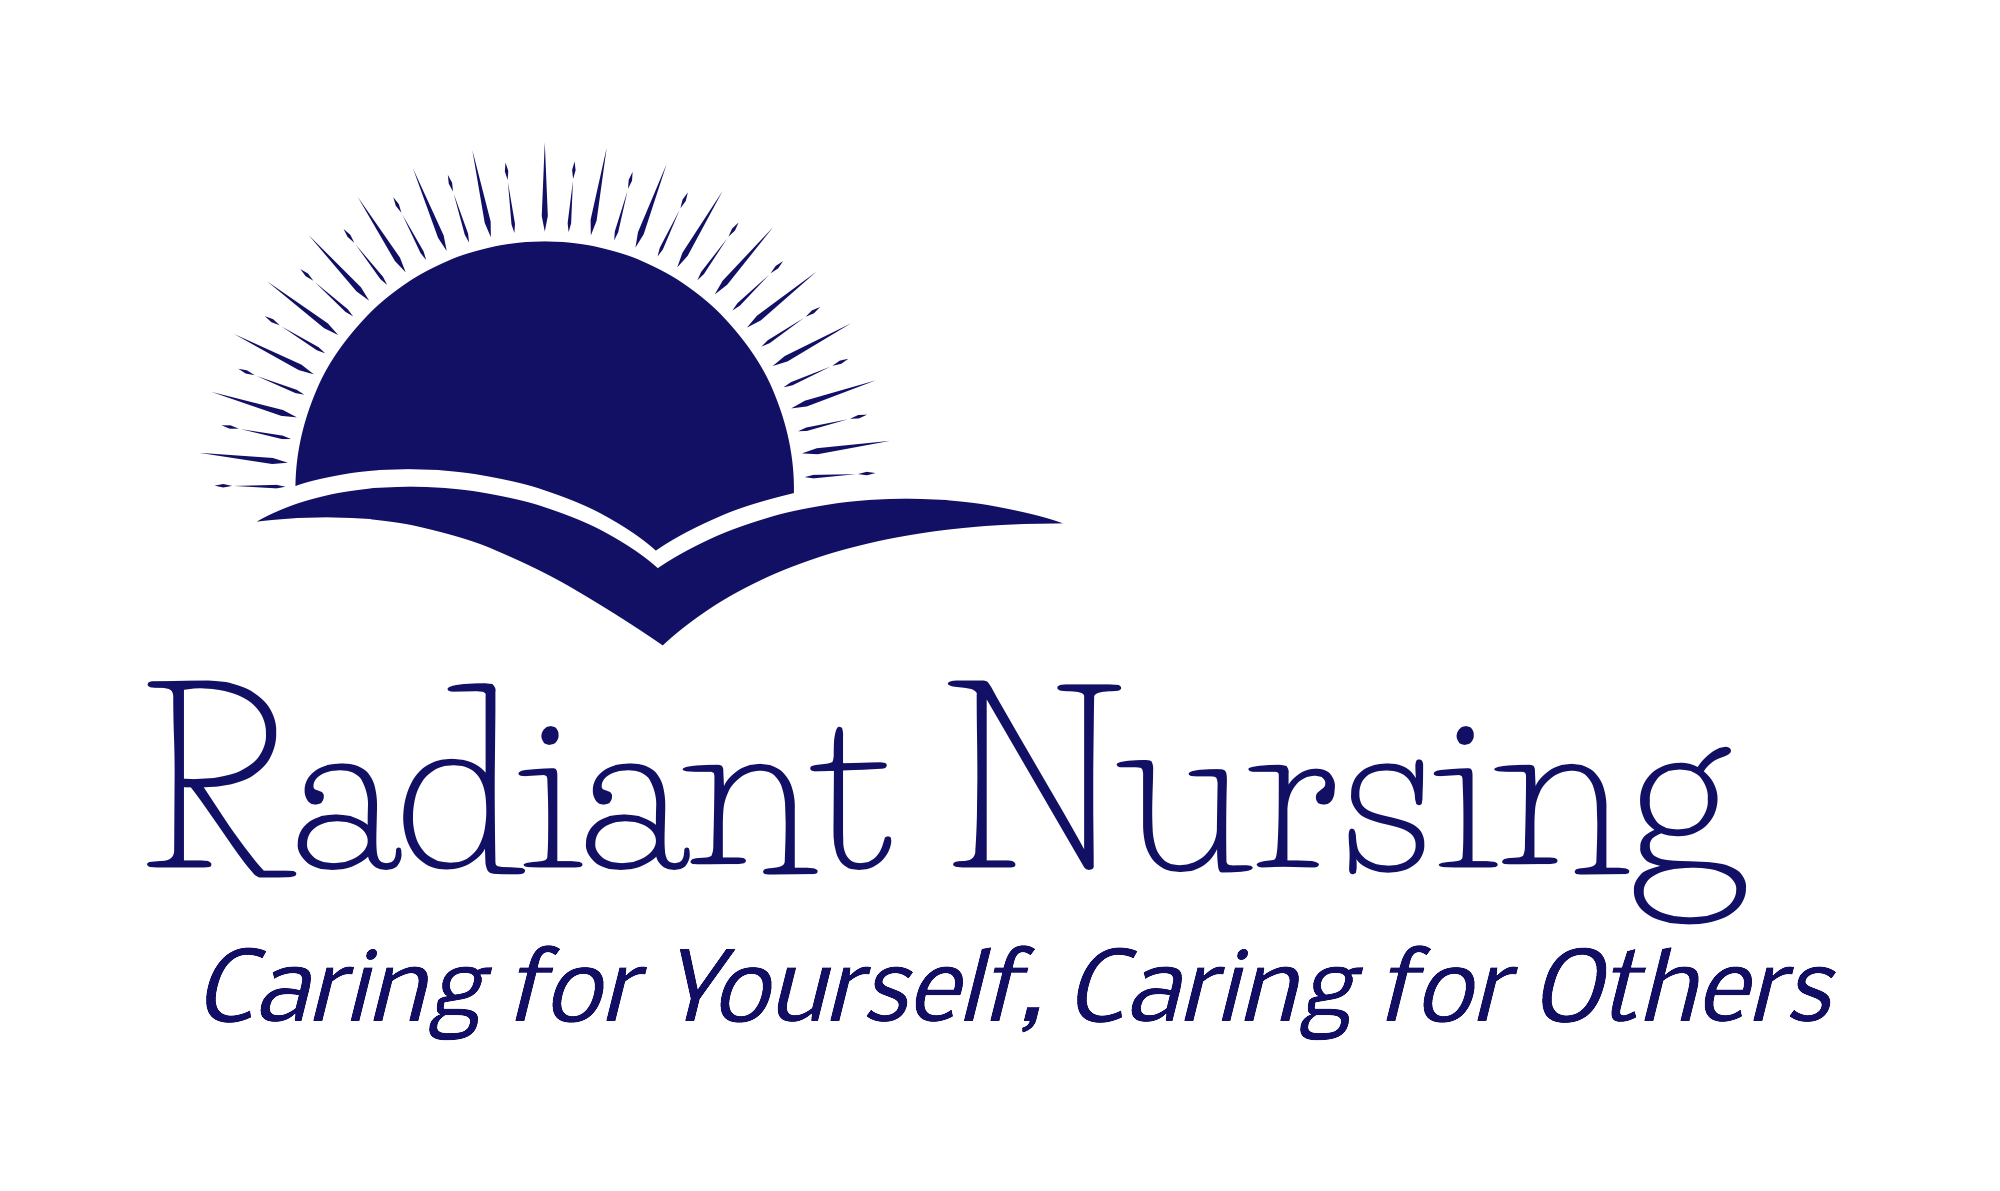 Welcome to Radiant Nursing.